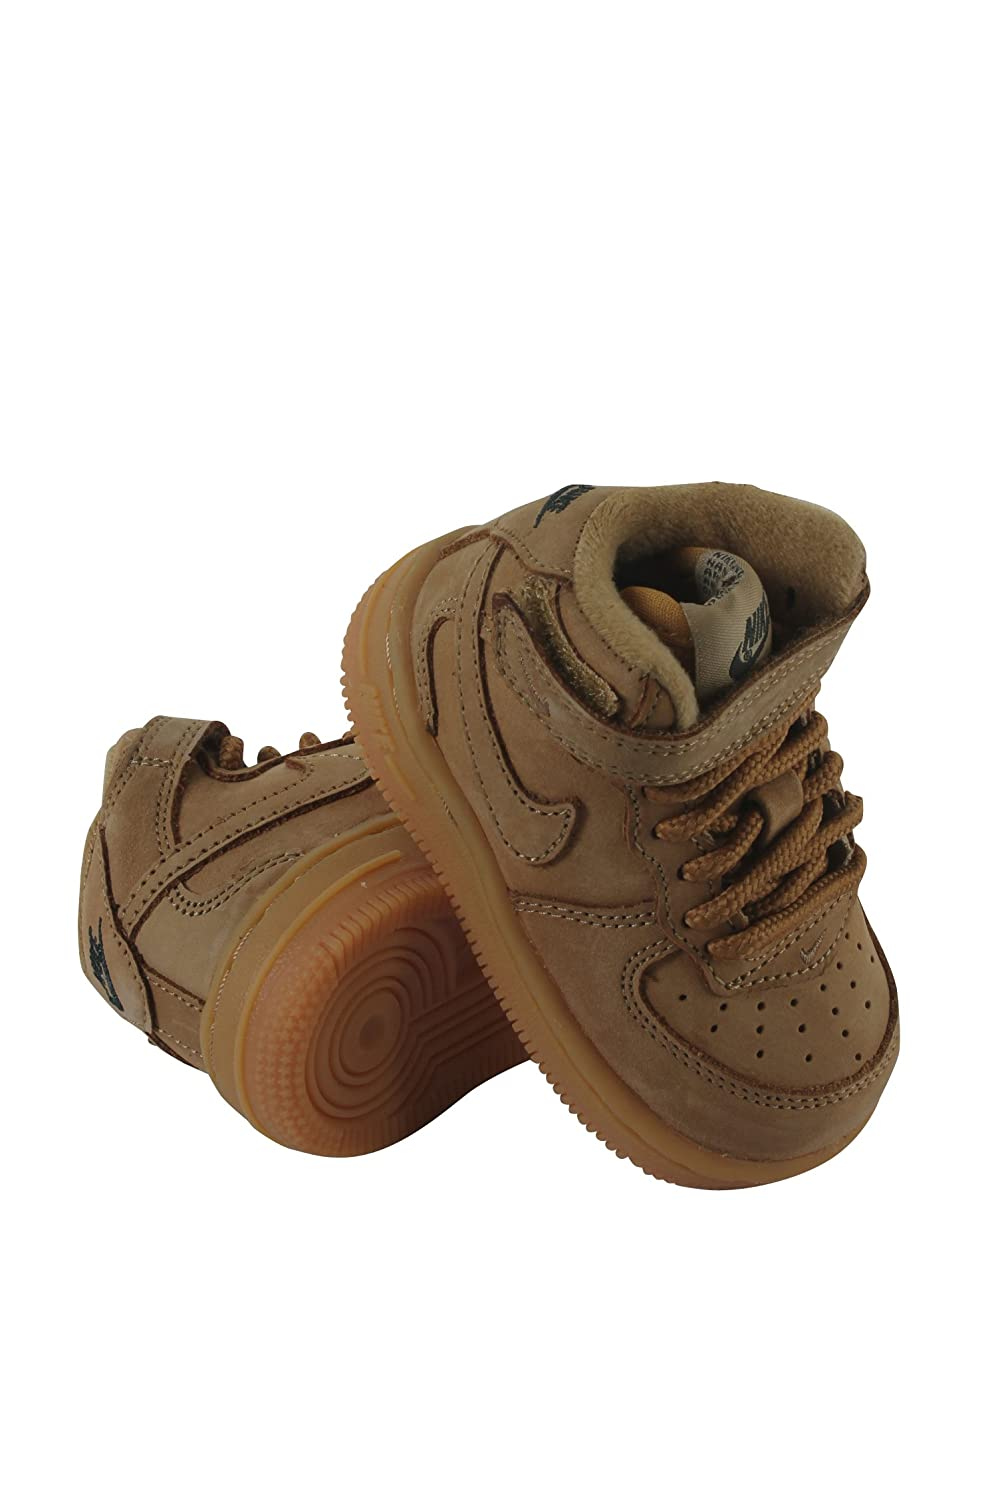 b5cb63e017 Amazon.com | Nike Force 1 MID LV8 (TD) Boys Toddler Basketball-Shoes ...